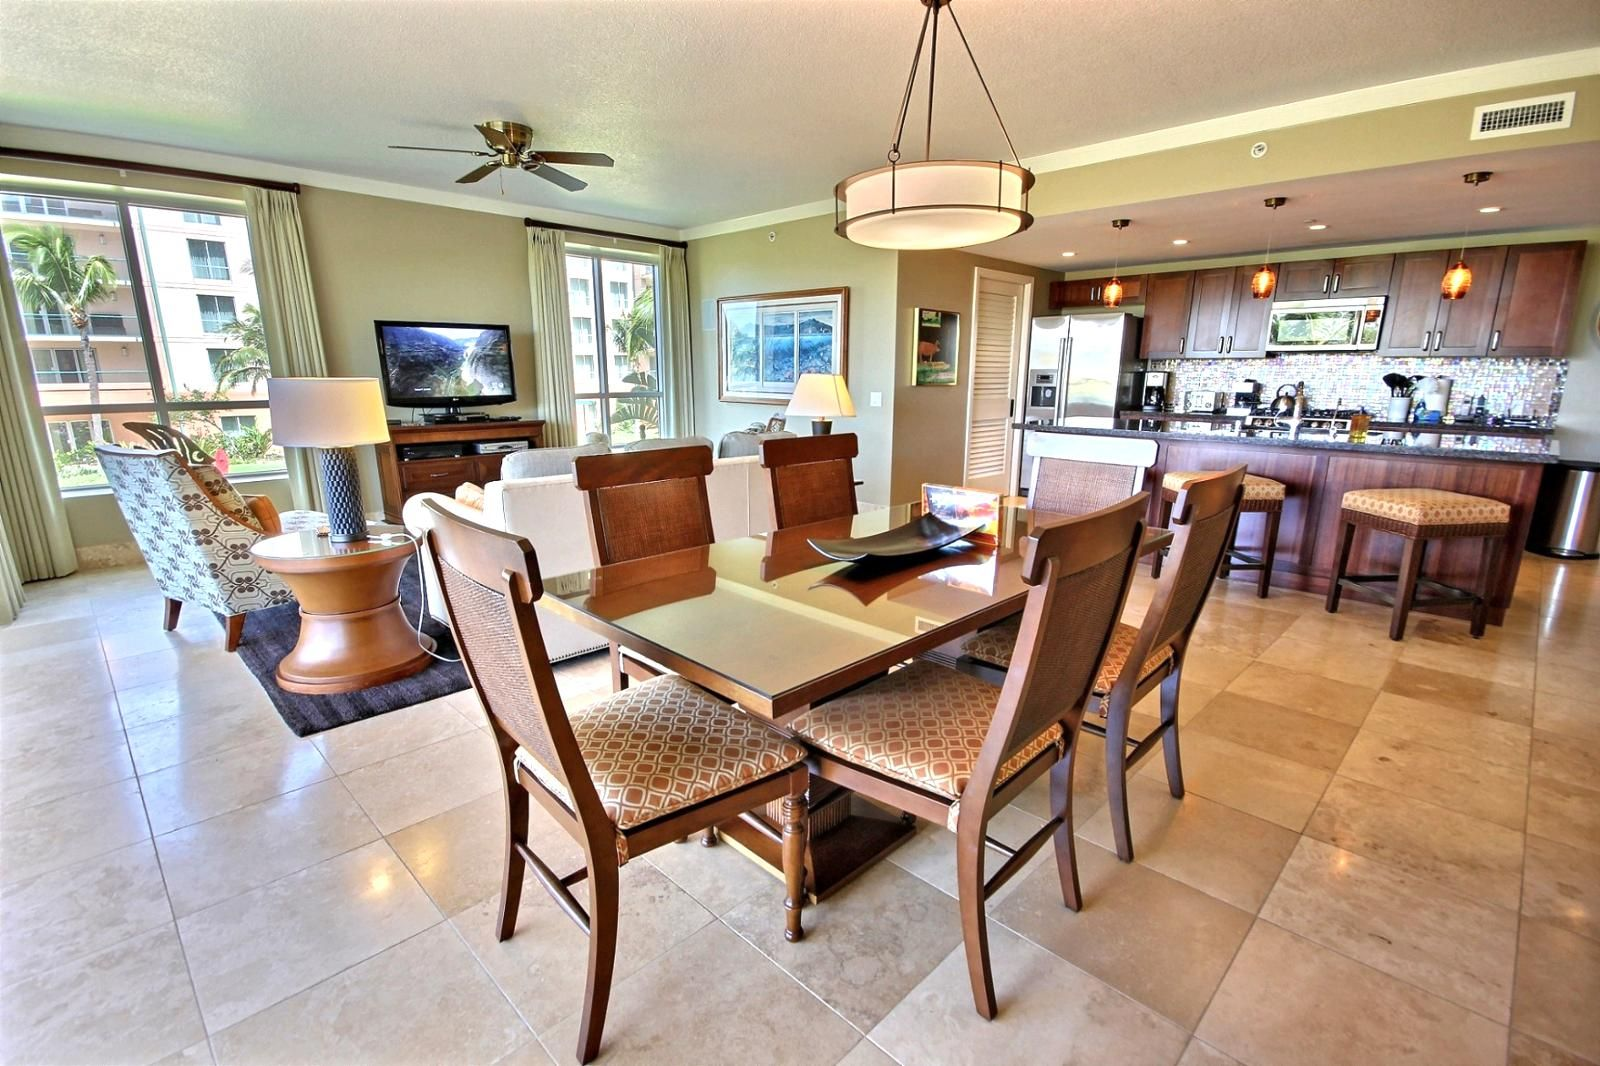 Tile Flooring For Kitchen 10 Great Tips Remodelling Ideas Dining Living Room